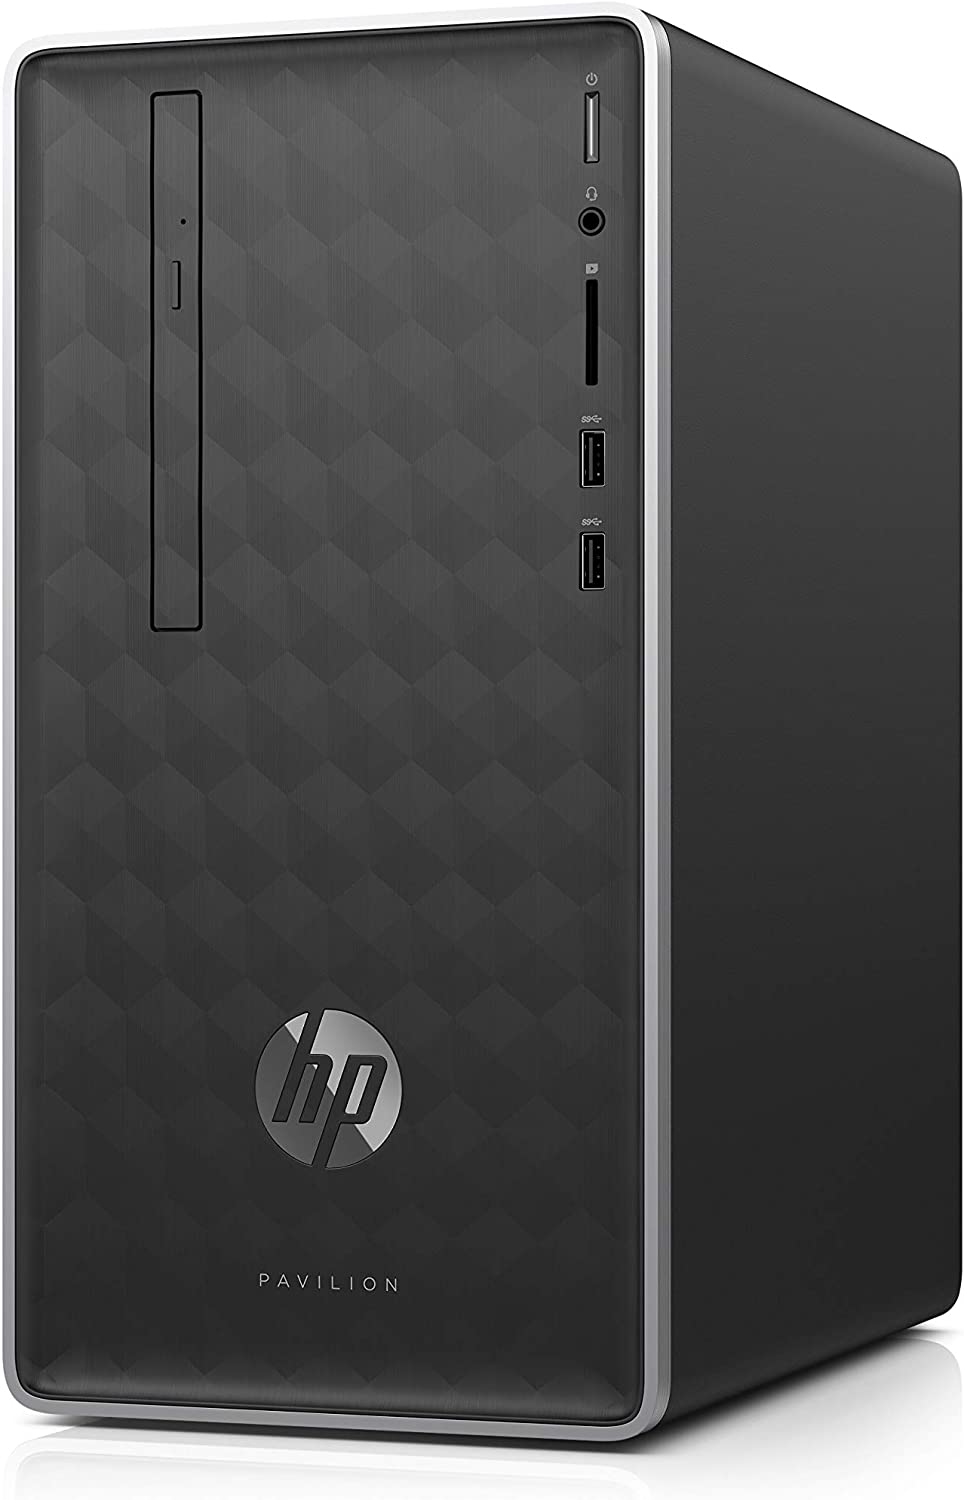 HP 590-p0033w Pavilion Desktop i3-8100 3.6GHz 4GB RAM 1TB HDD Win 10 Home Ash Silver